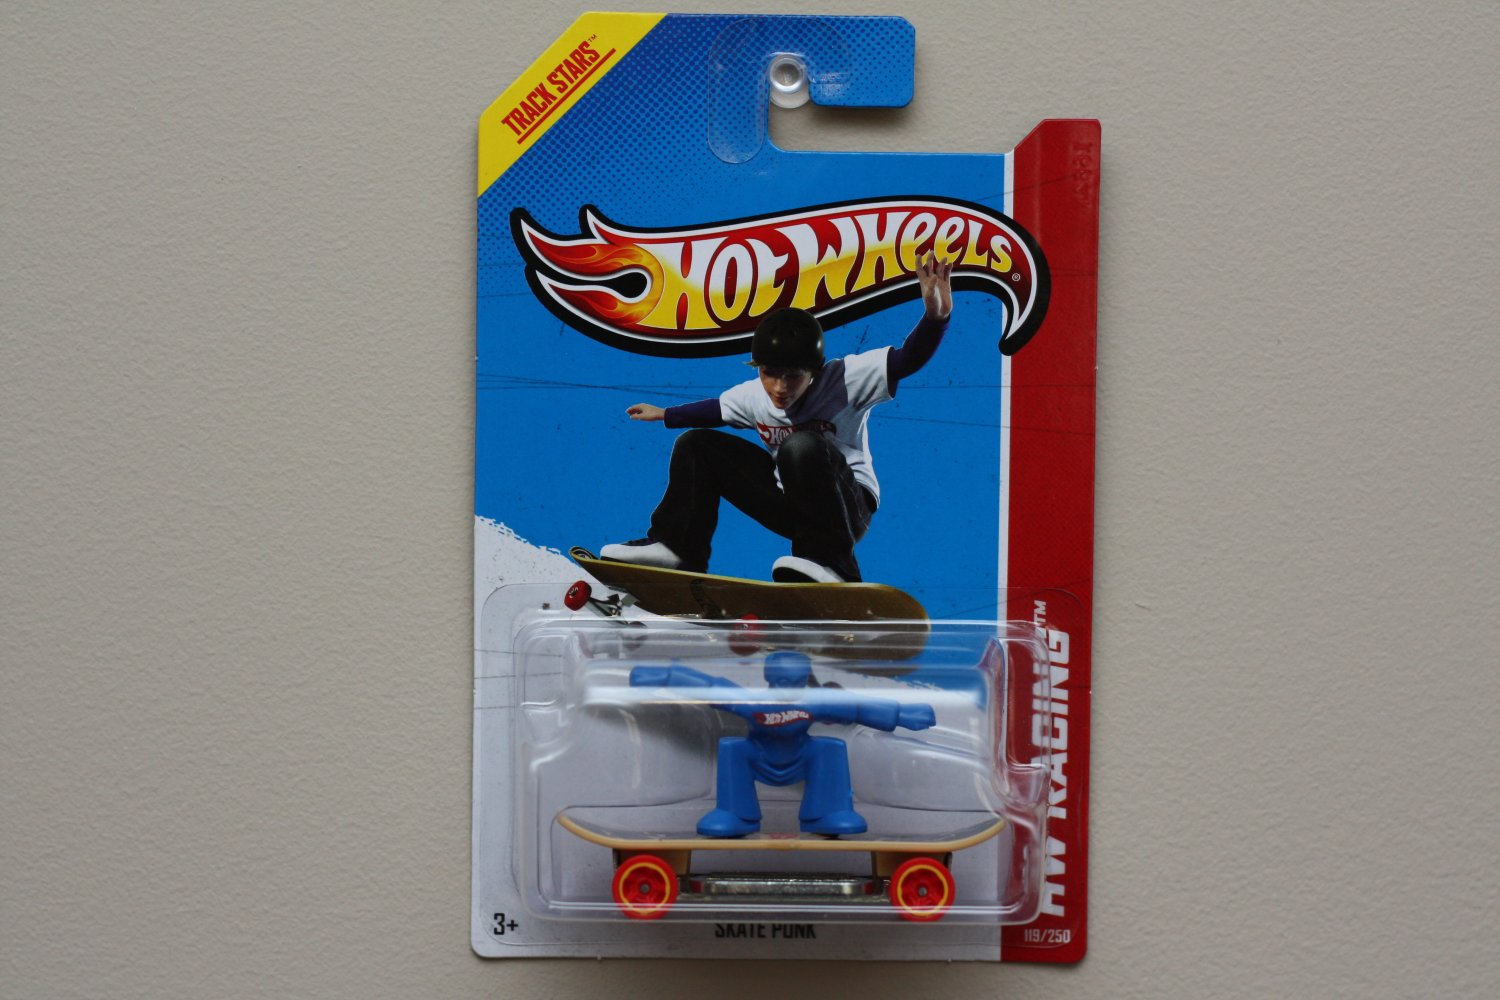 Hot Wheels 2013 HW Racing Skate Punk